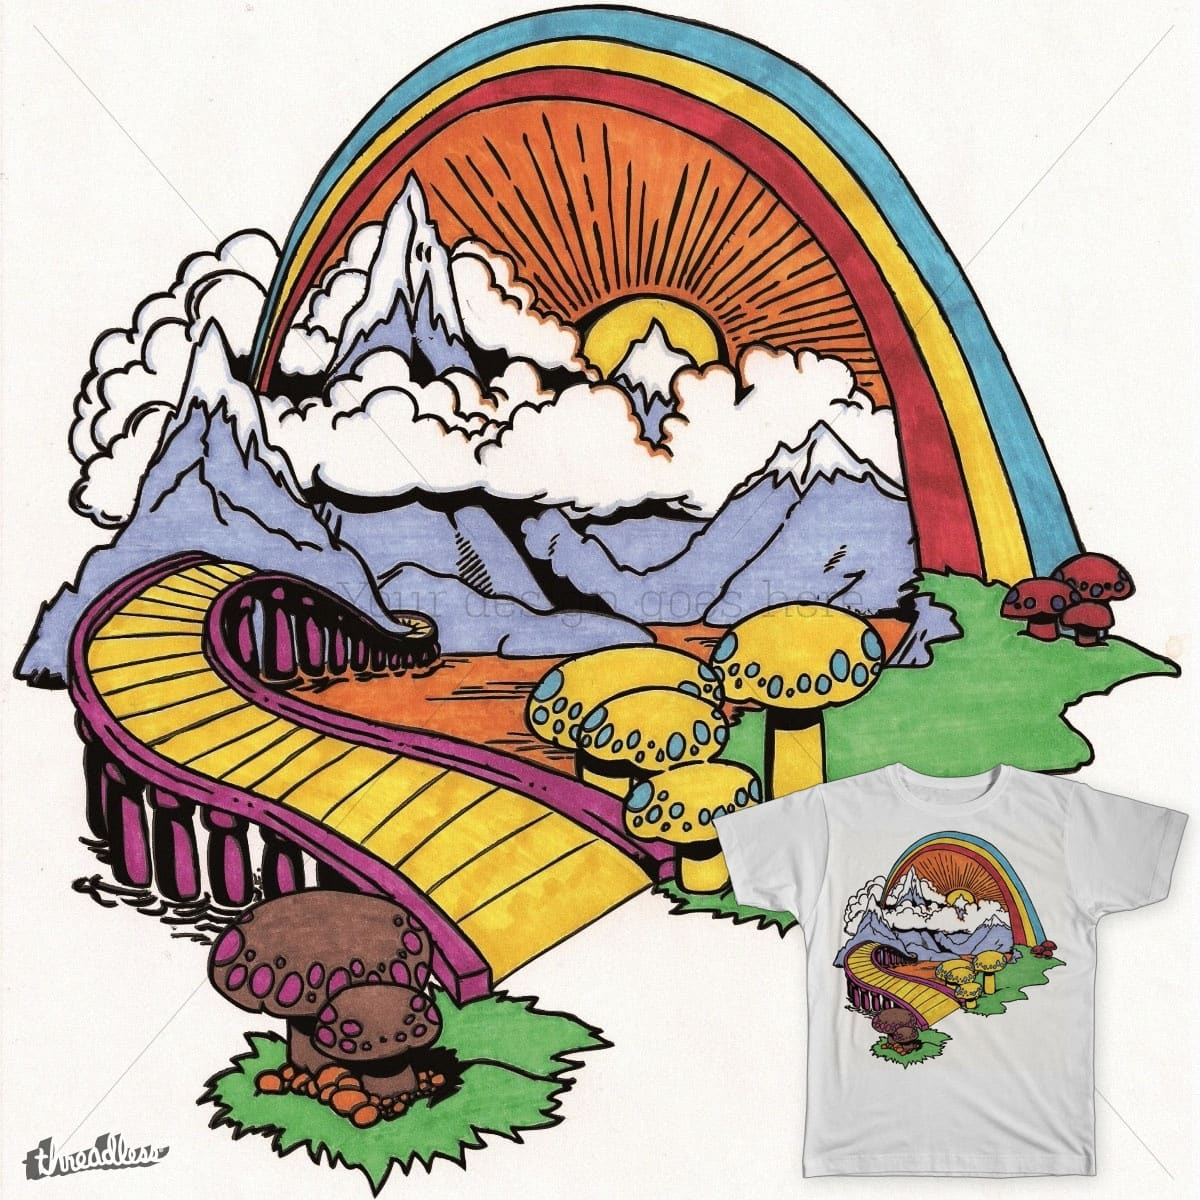 The End of the Rainbow by fleedom on Threadless